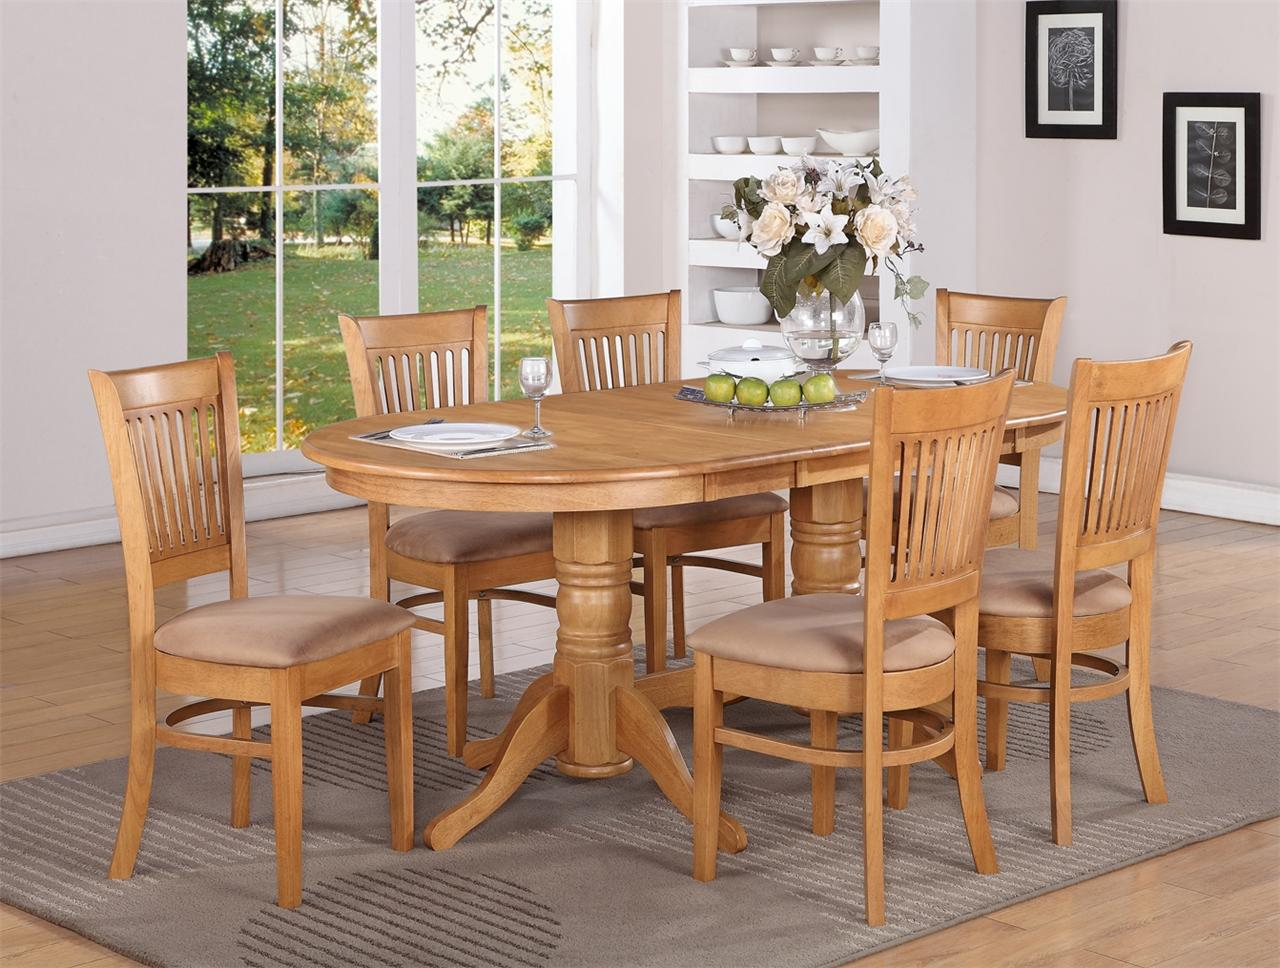 9 pc vancouver oval dinette kitchen dining set table w 8 9 pc vancouver oval dinette kitchen dining set table w 8 oval